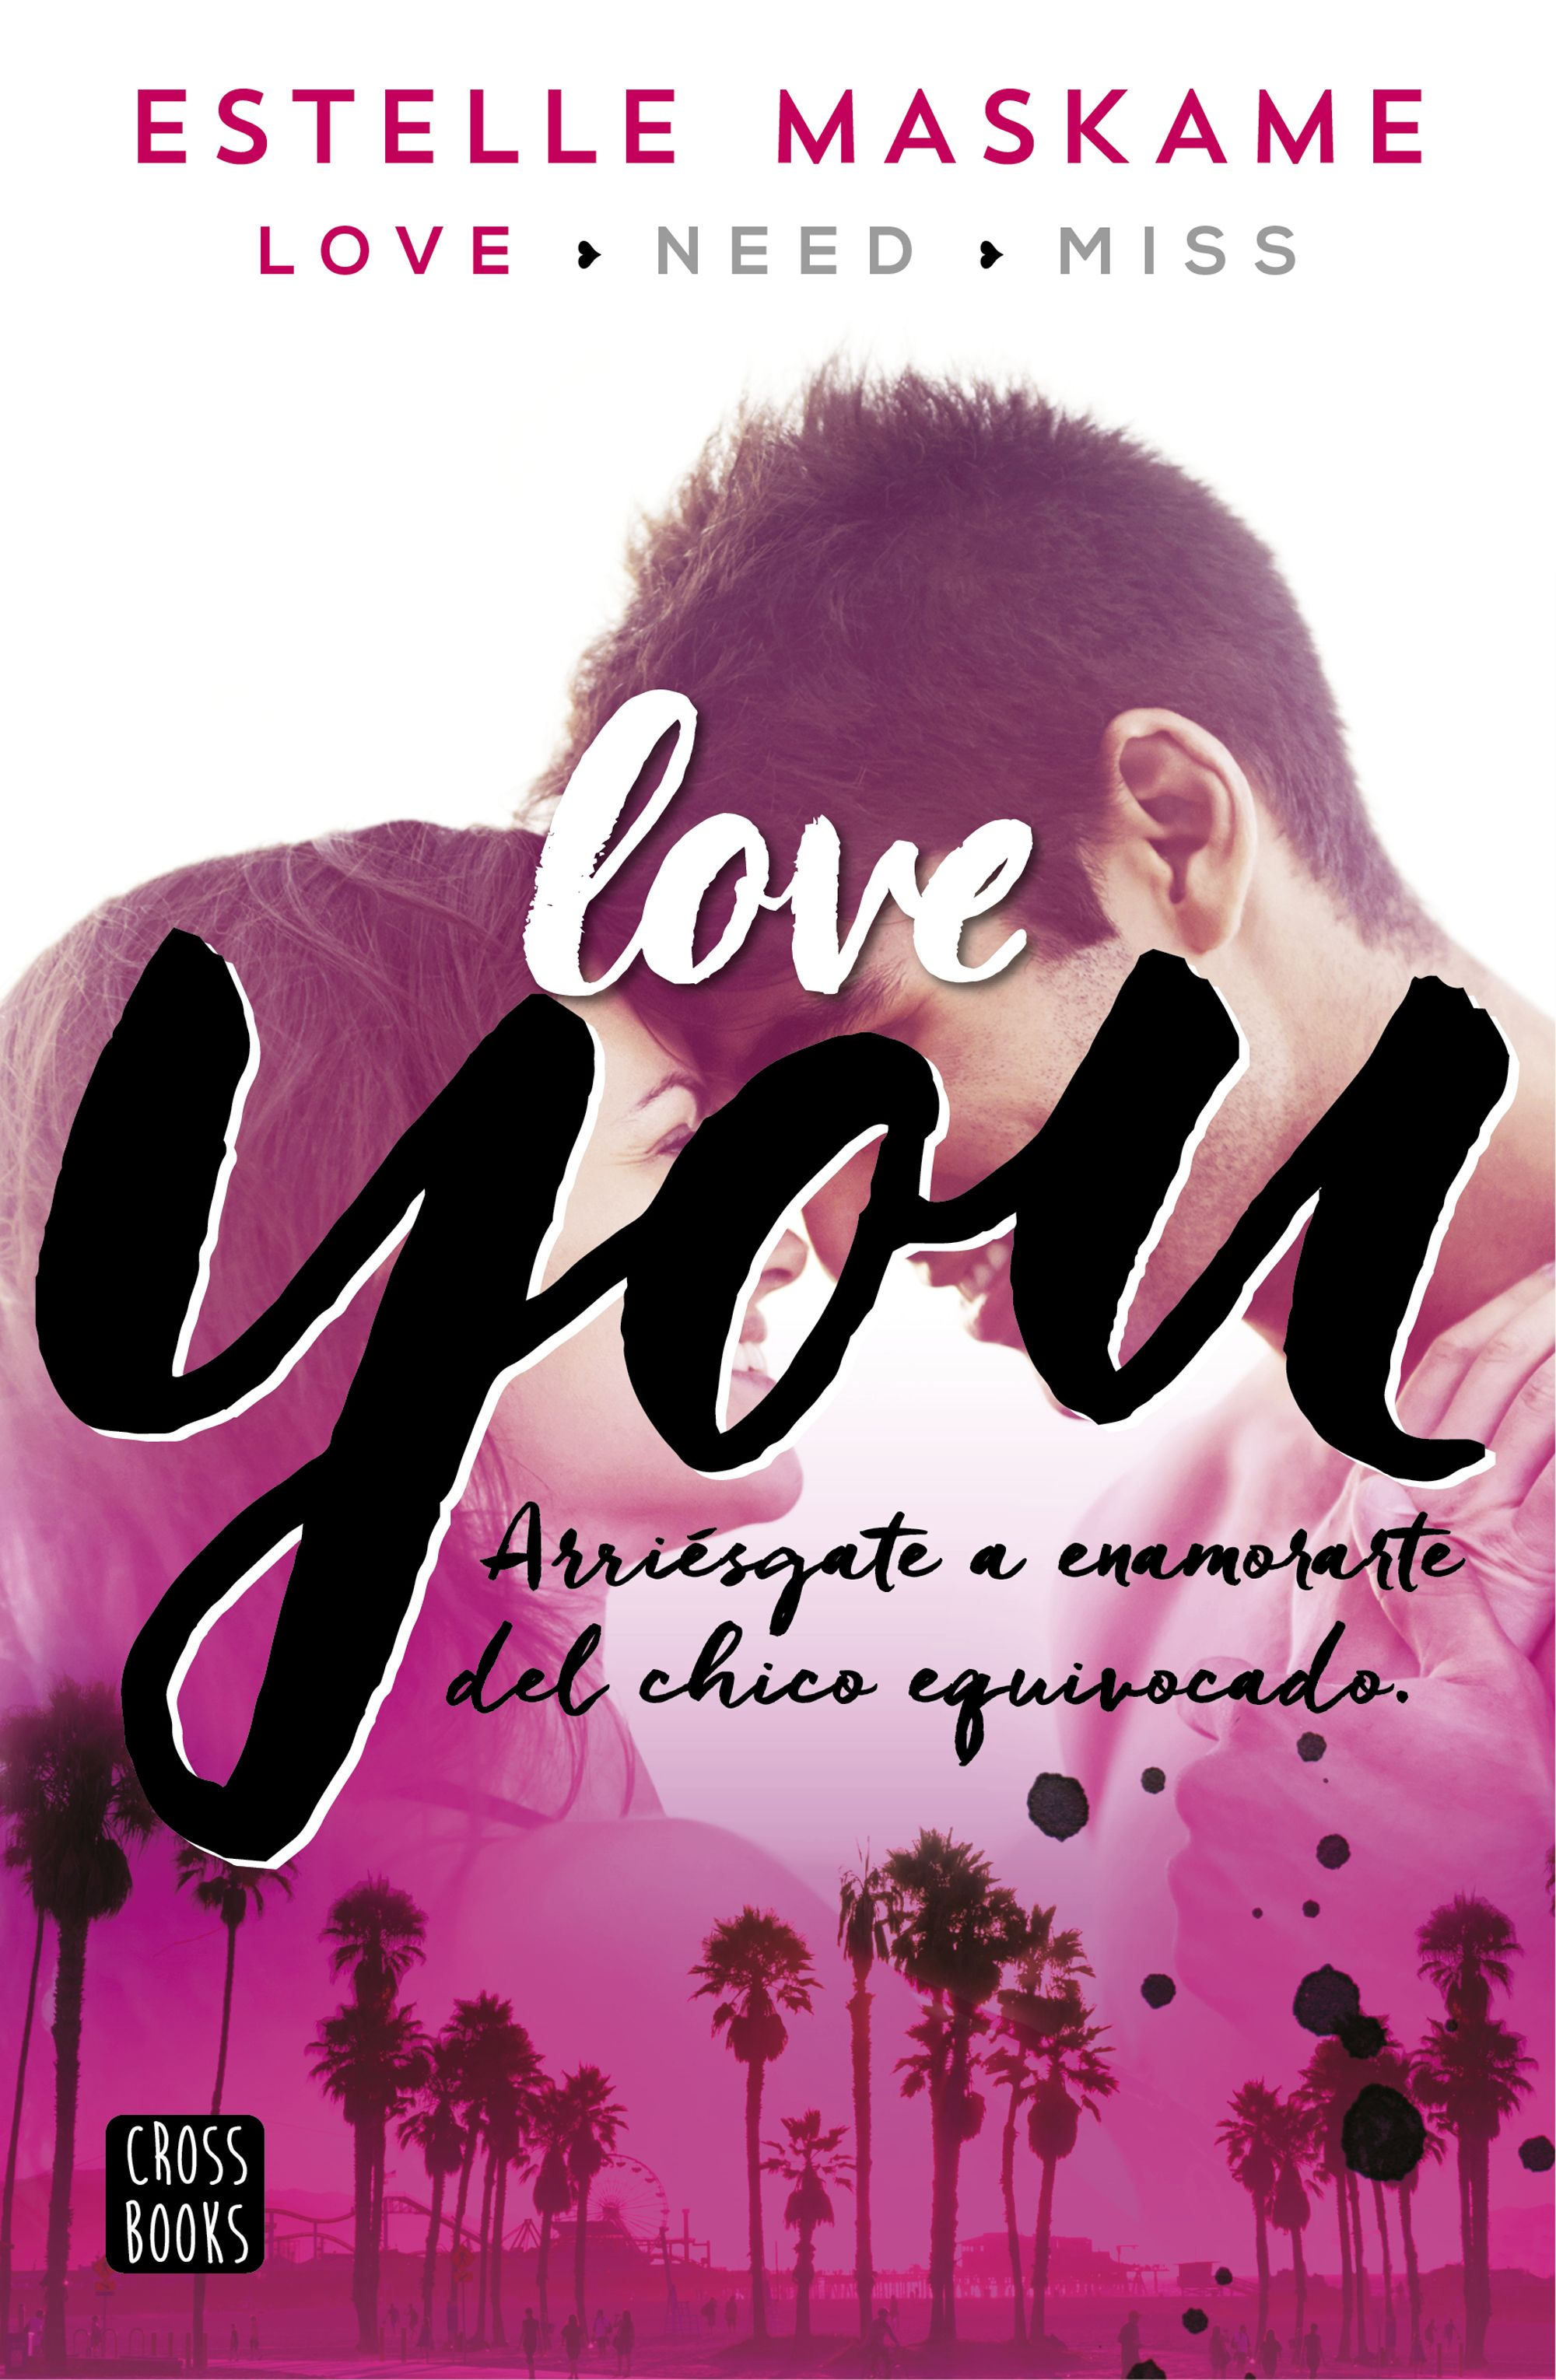 https://infoliteraria.com/wp-content/uploads/2016/01/portada_you-1-love-you_estelle-maskame_201510291512.jpg